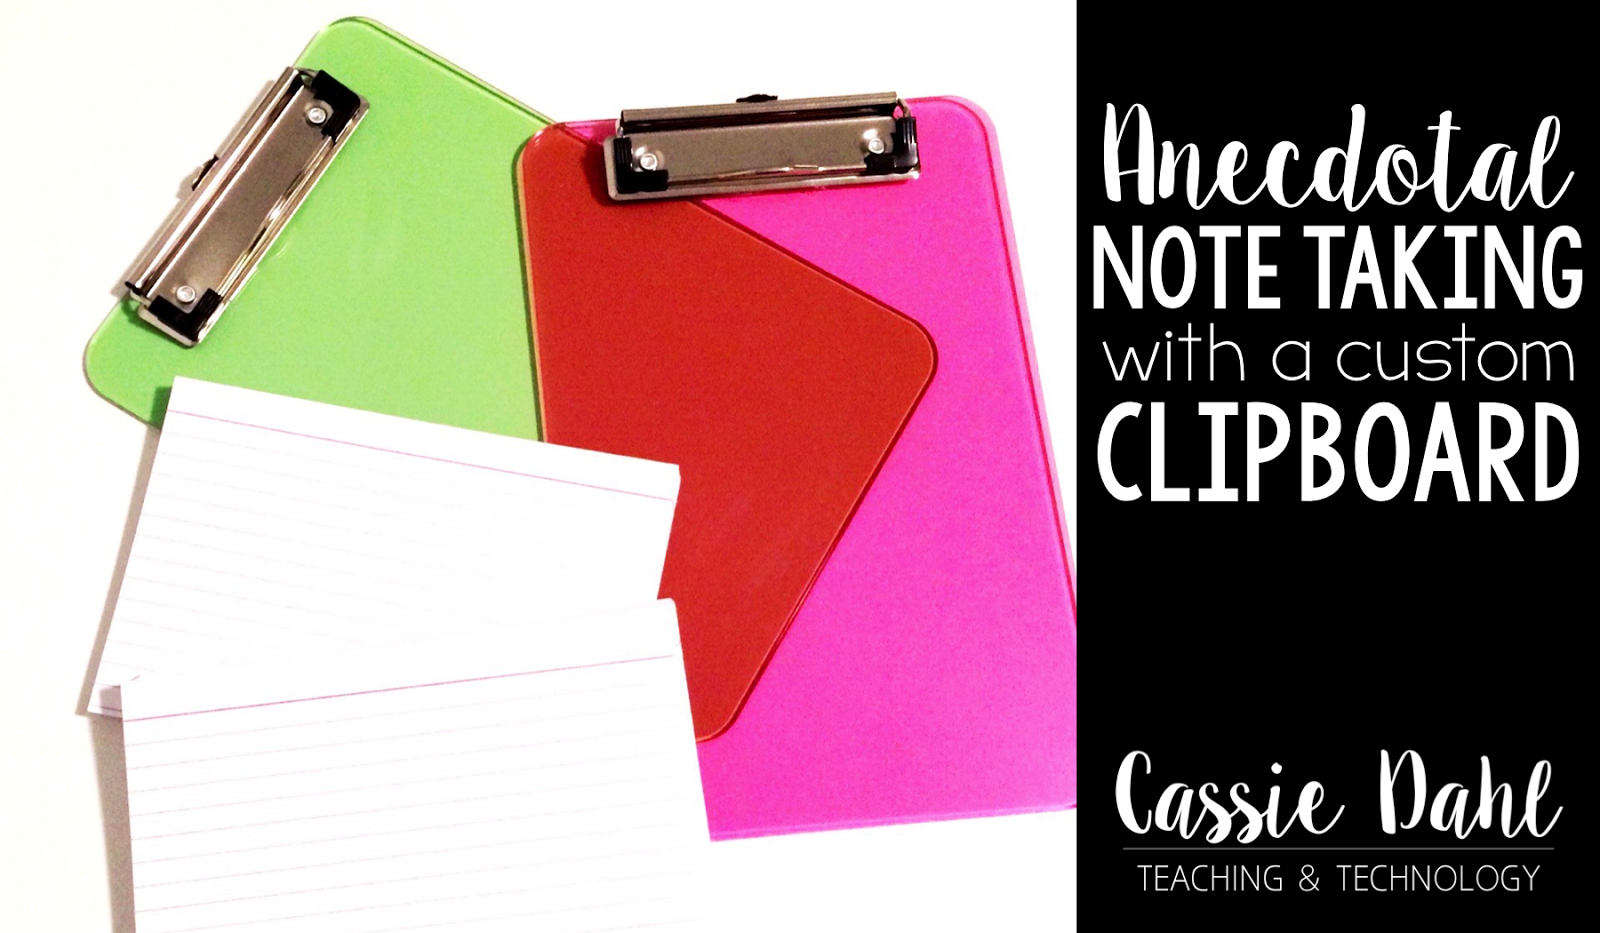 Keeping track of important little notes throughout the school year can be tricky. No more huge binders, random post-its or student files! Check out how you can make your own custom clipboard to keep Anecdotal Notes.